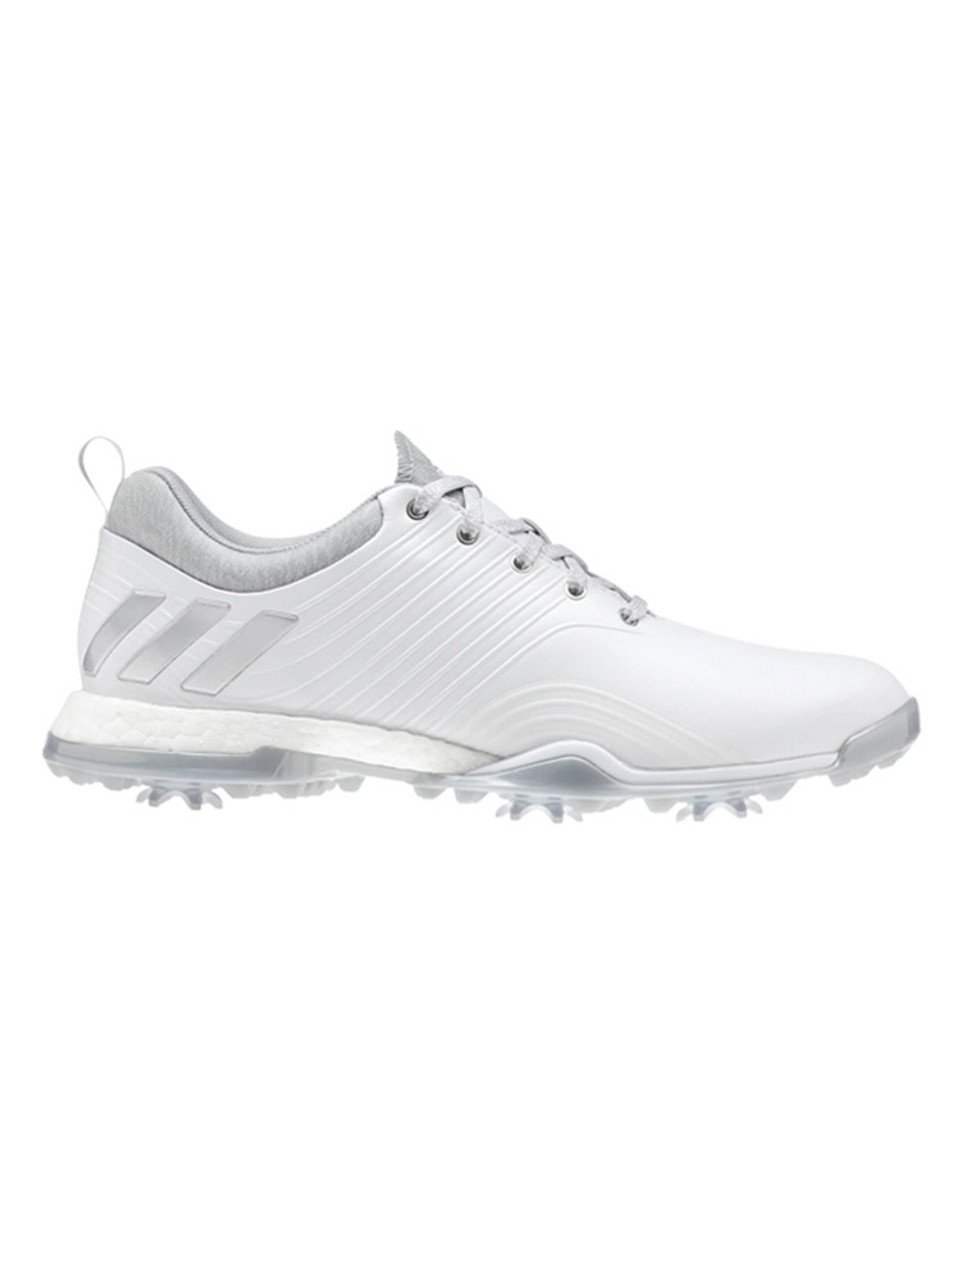 online retailer b1142 877aa Adidas W Adipower 4orged Golf Shoes - FTWR White Silver Met